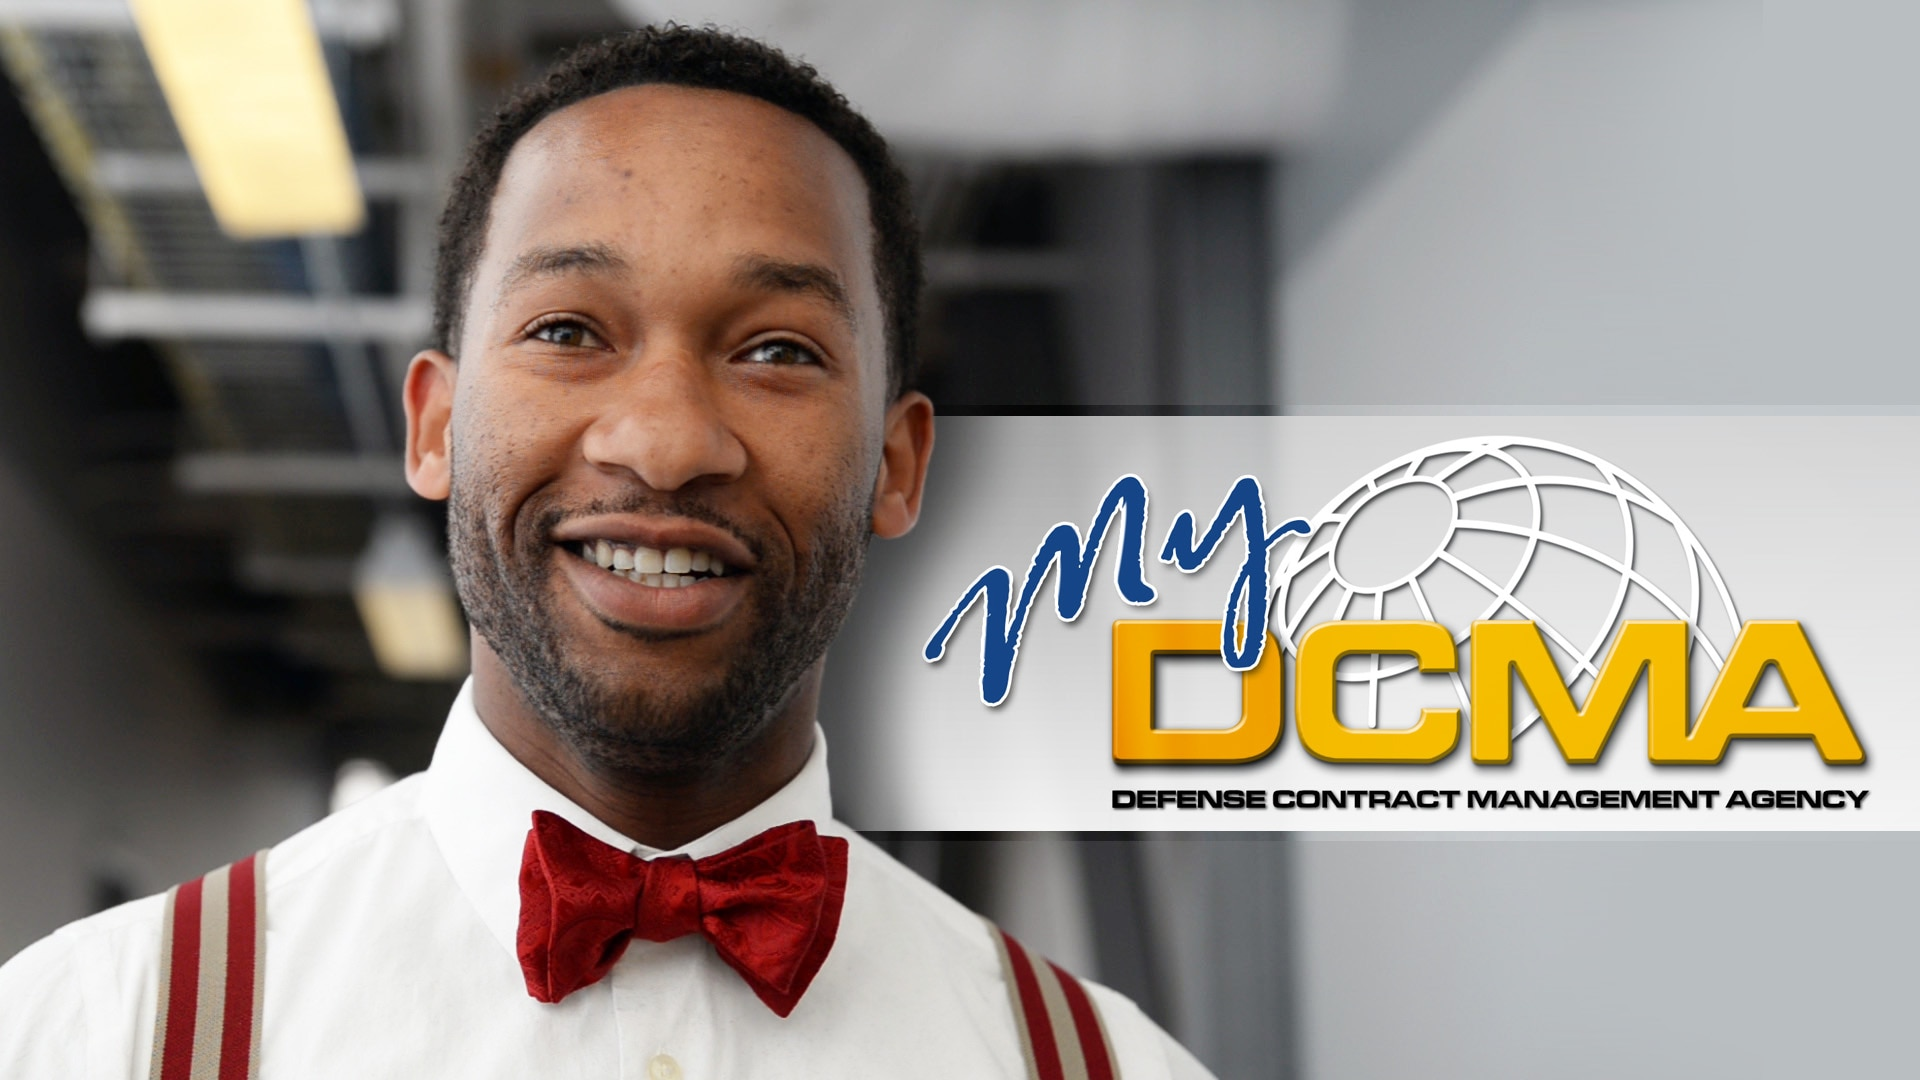 DeVonn Fray has been with Defense Contract Management Agency for three years as an administrative contracting officer and contingency response force representative at DCMA Lockheed Martin Marietta.